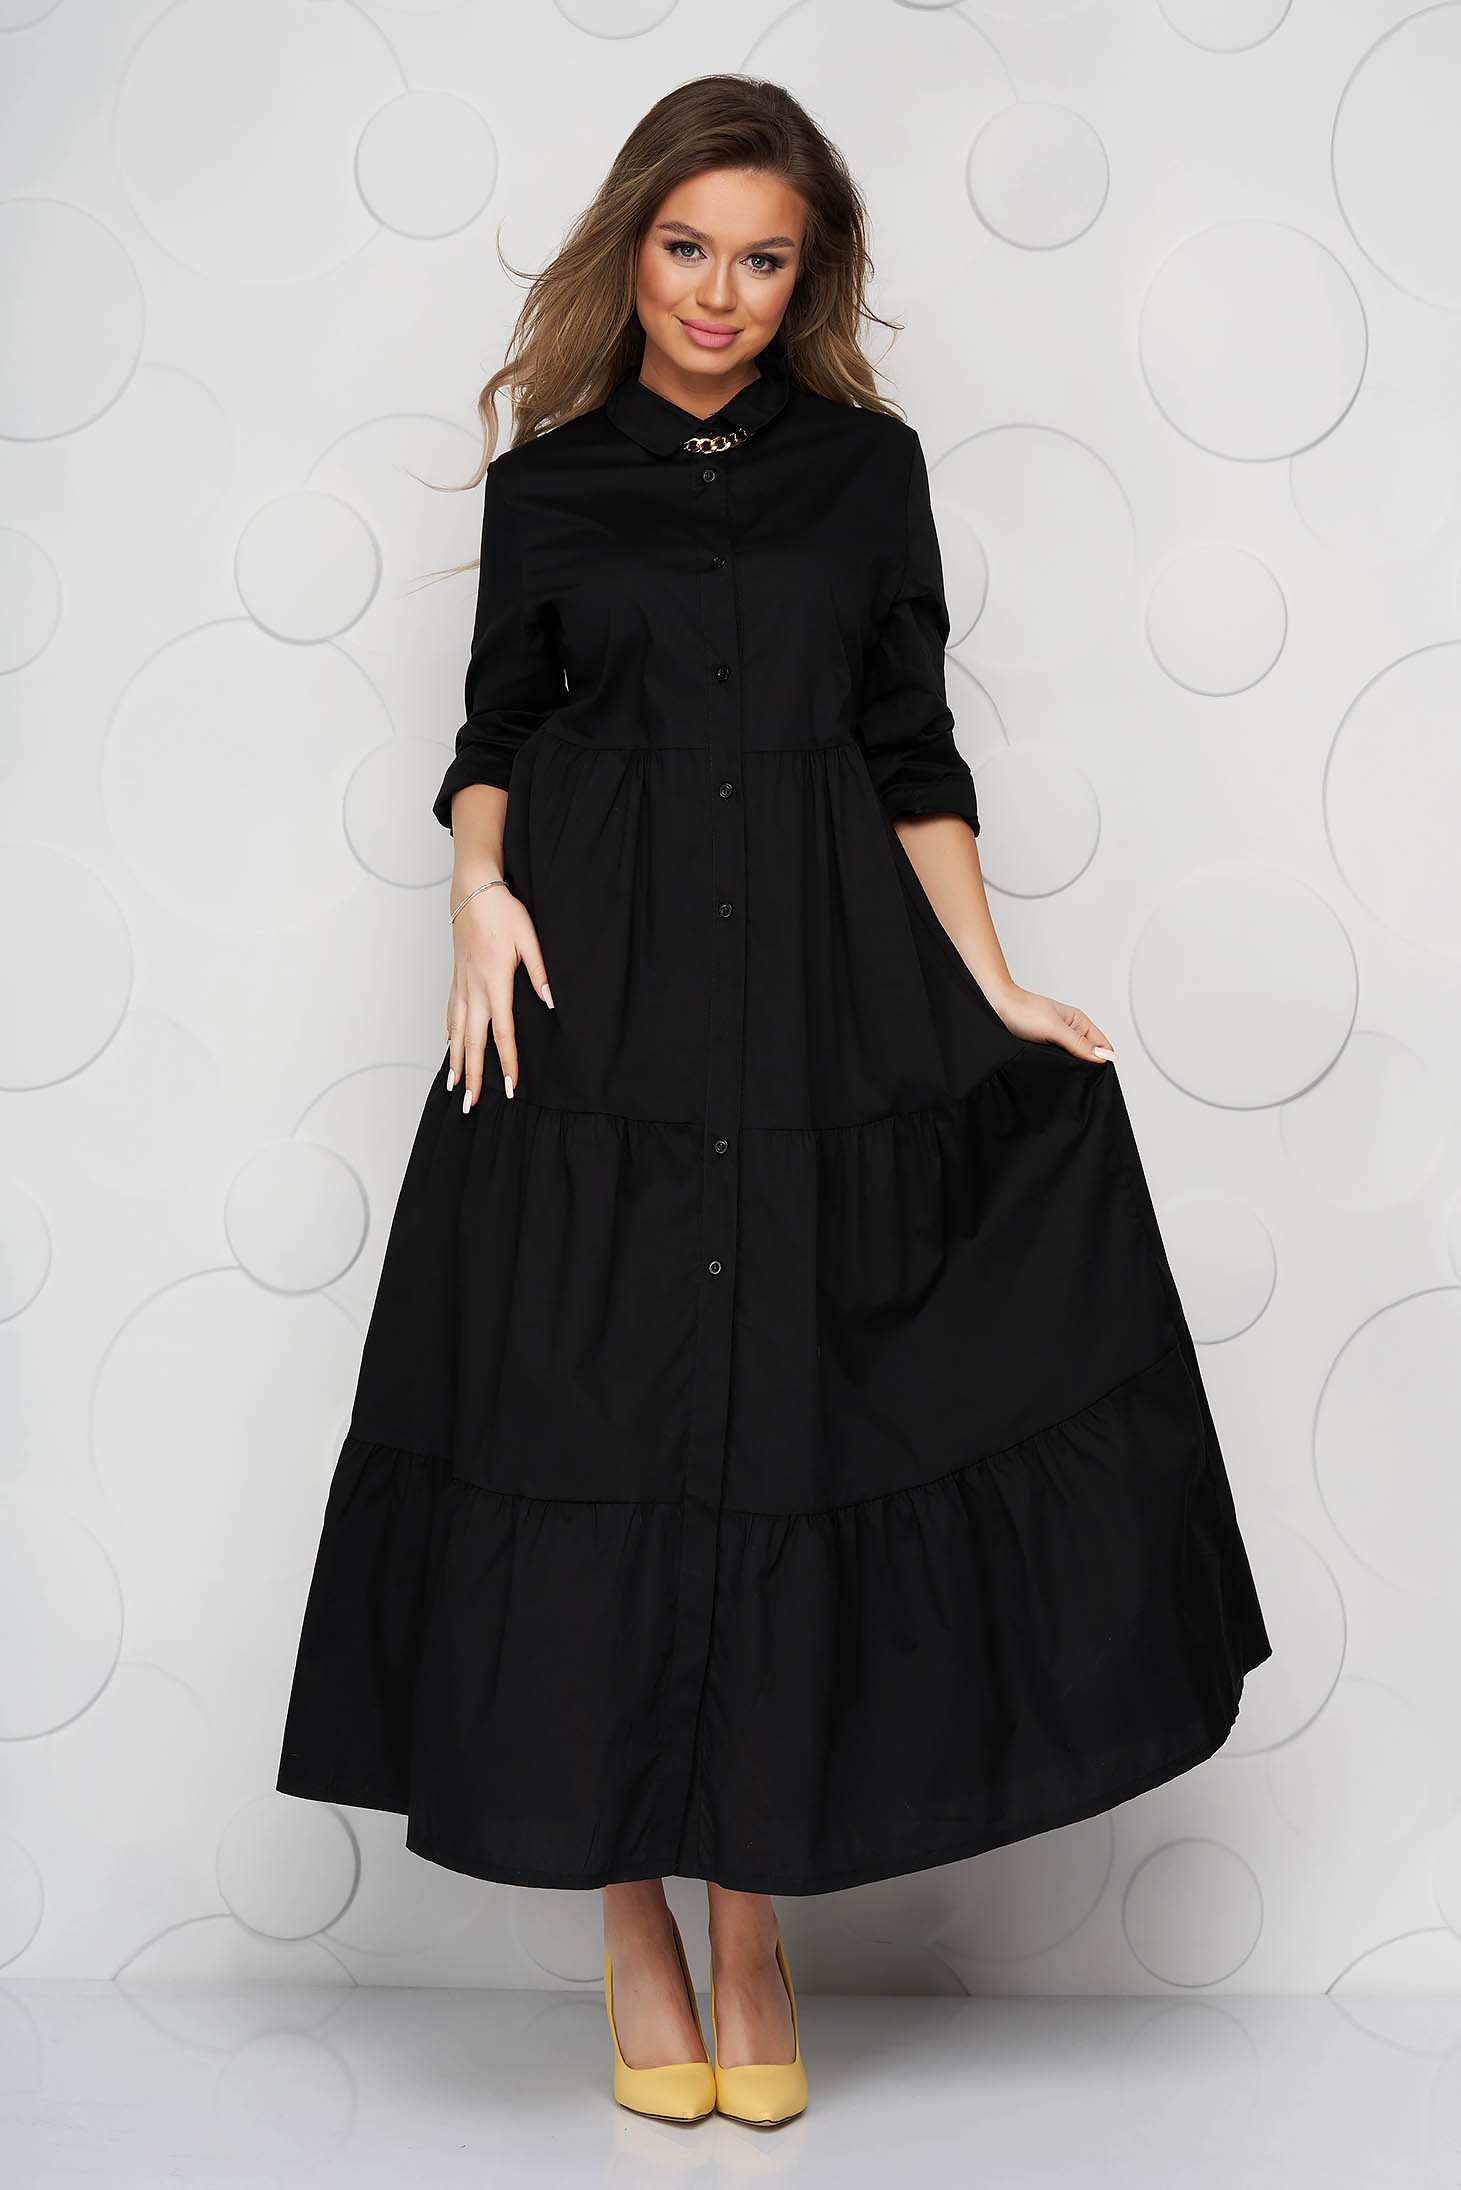 Black dress thin fabric with ruffle details a-line long